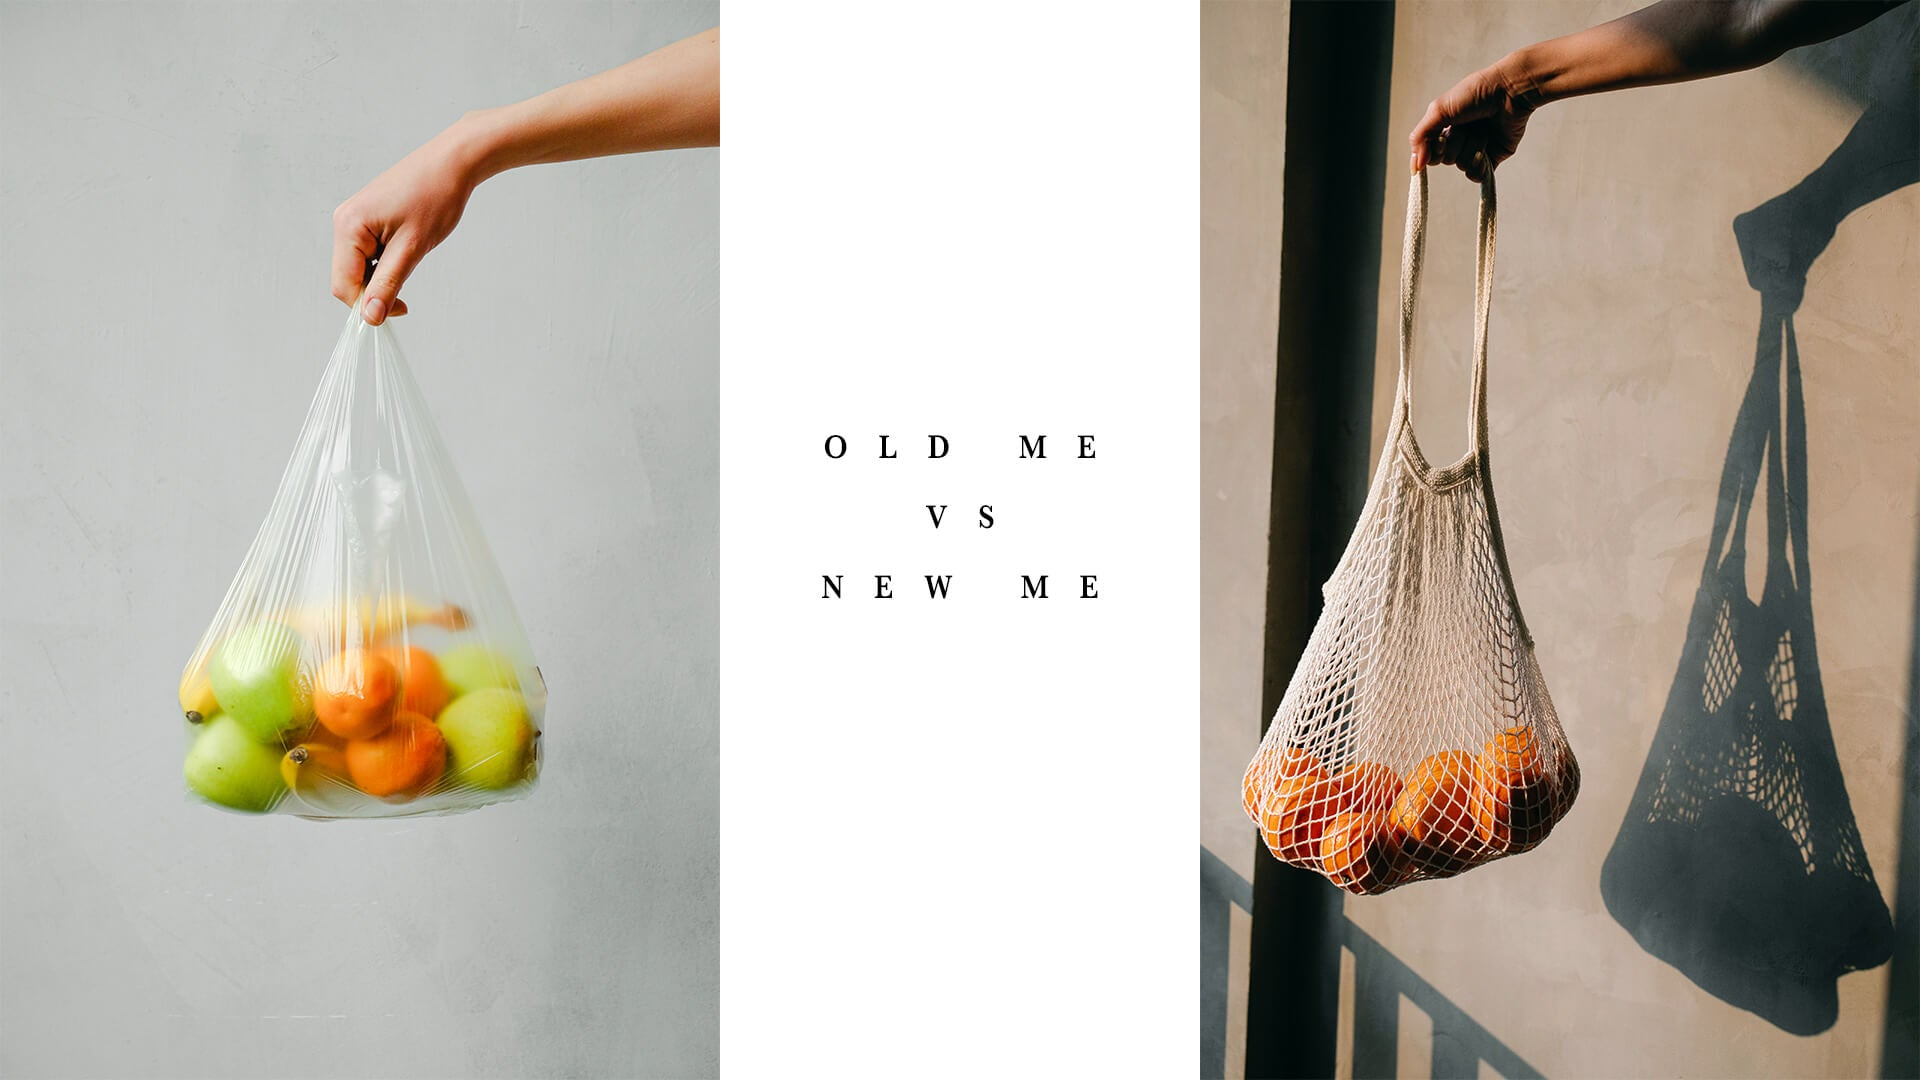 Plastic bag filled with fruits and eco friendly bag filled with fruits